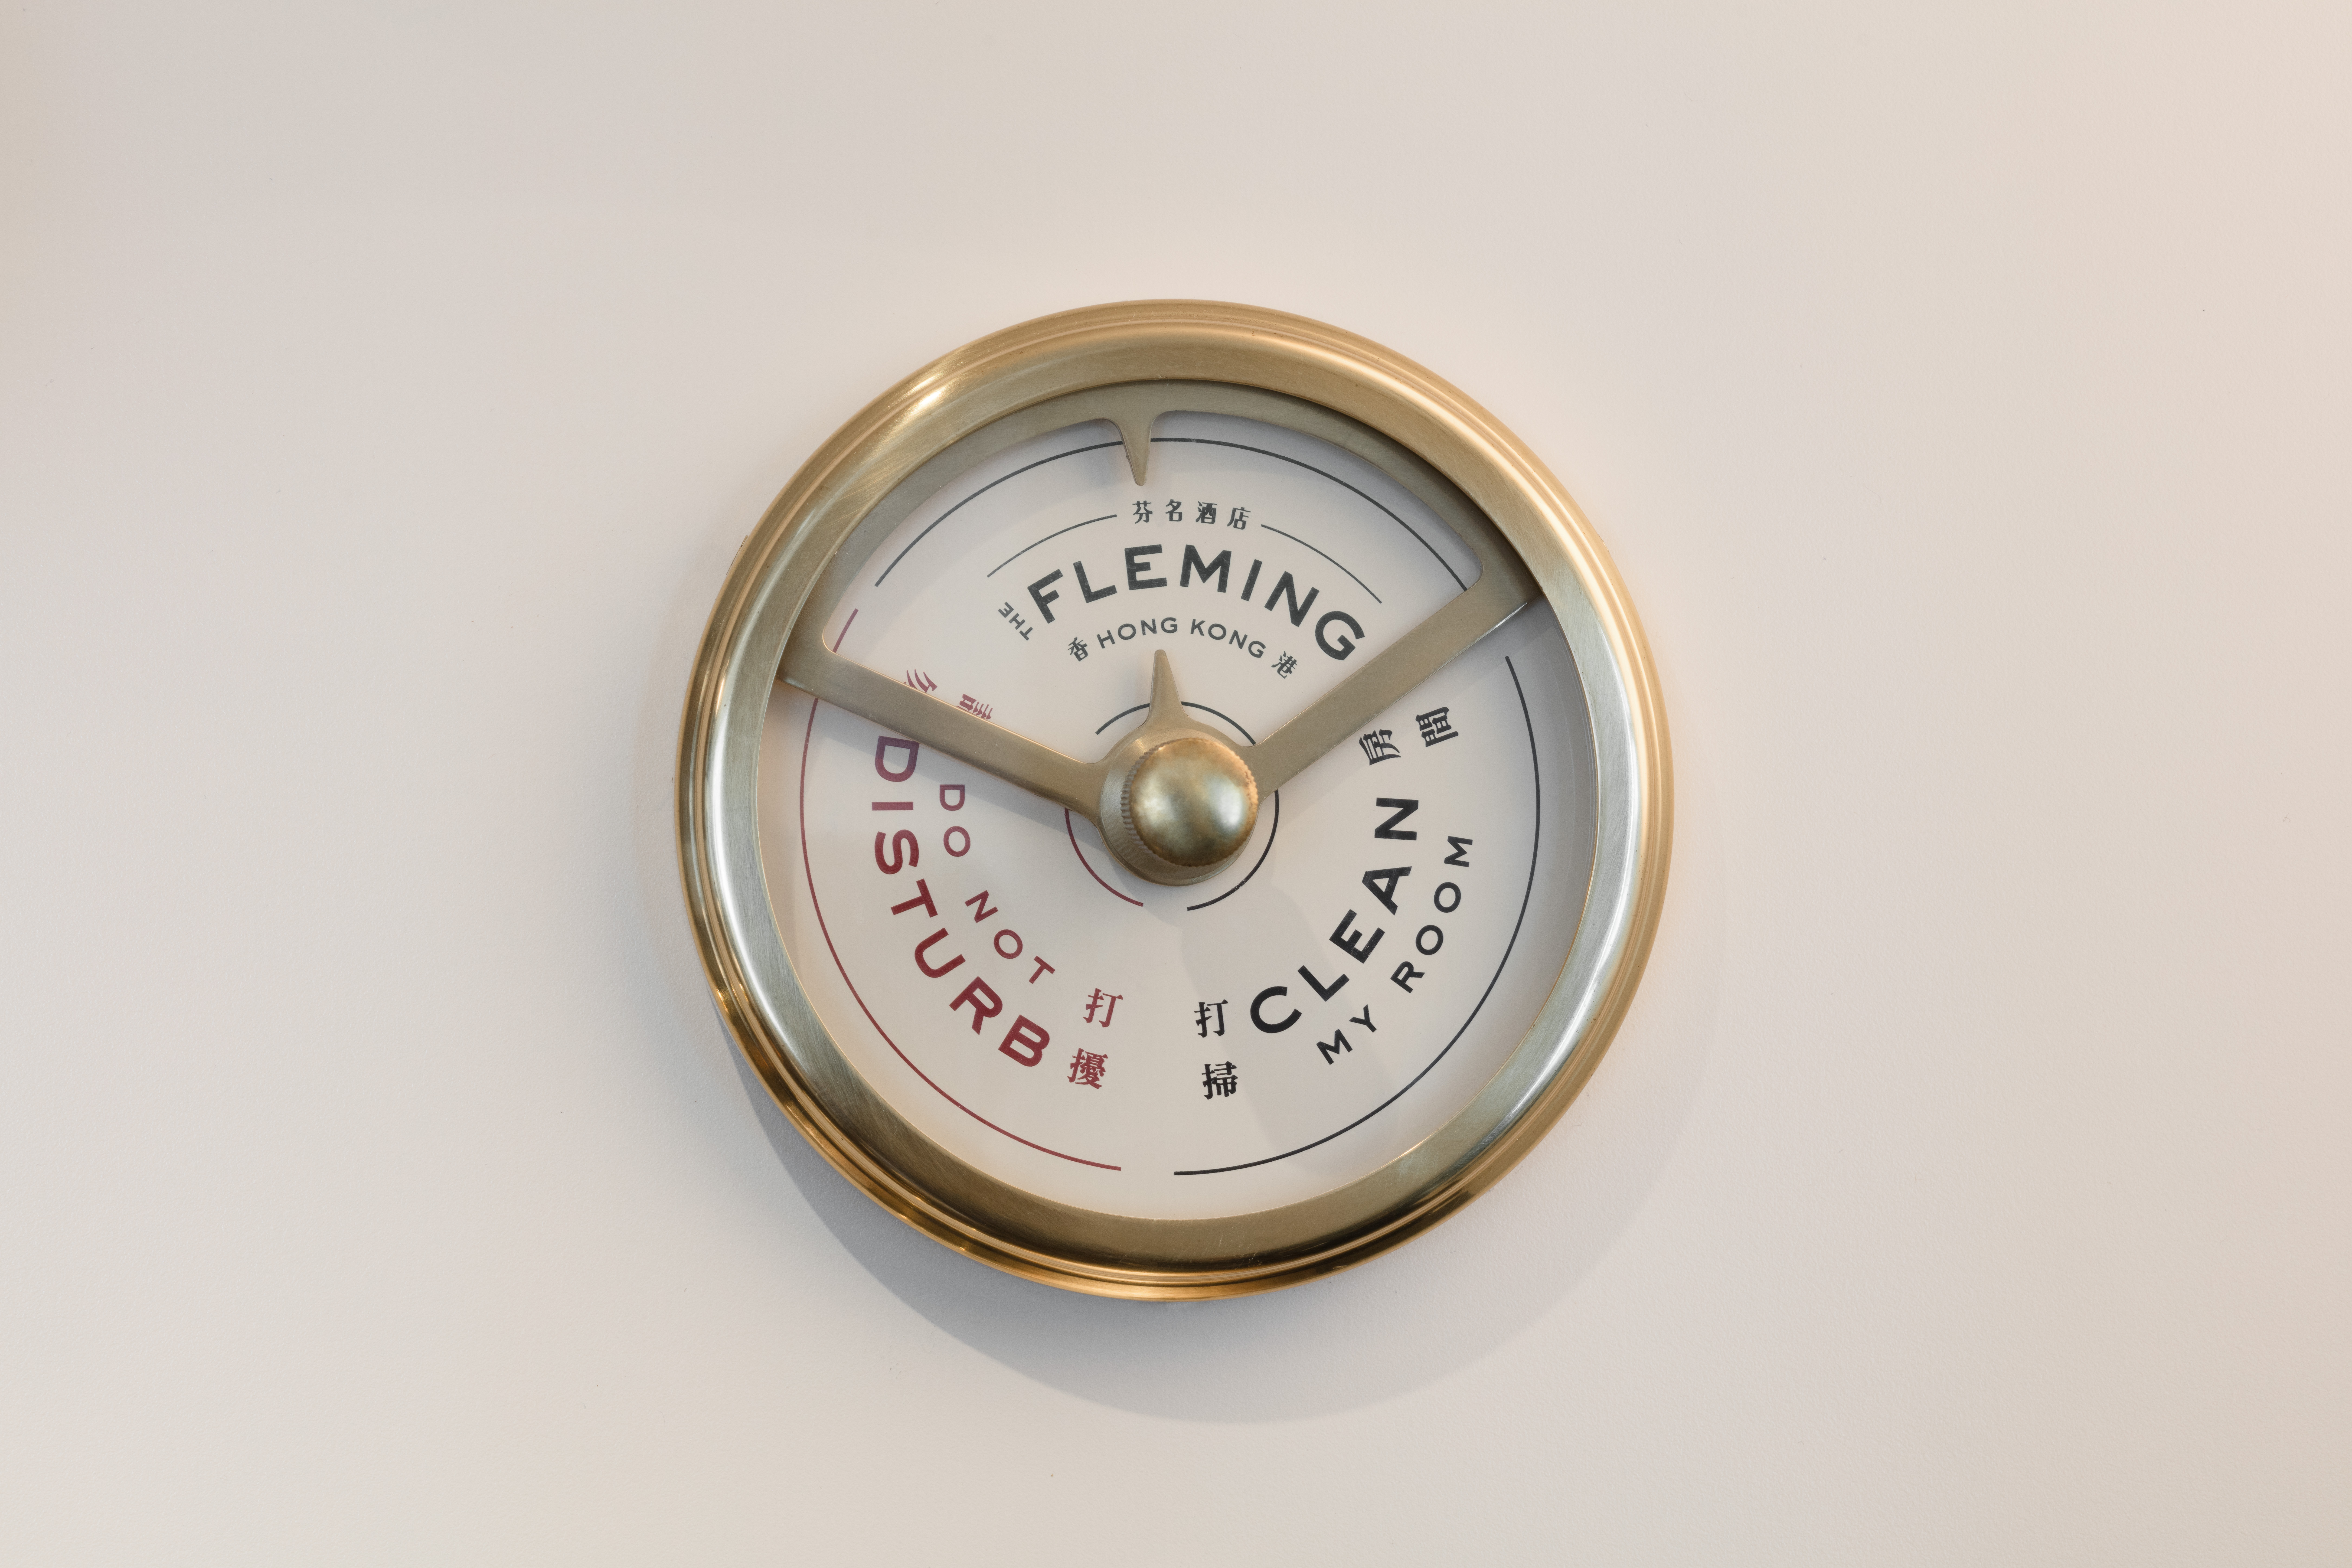 The Fleming - Room Signage